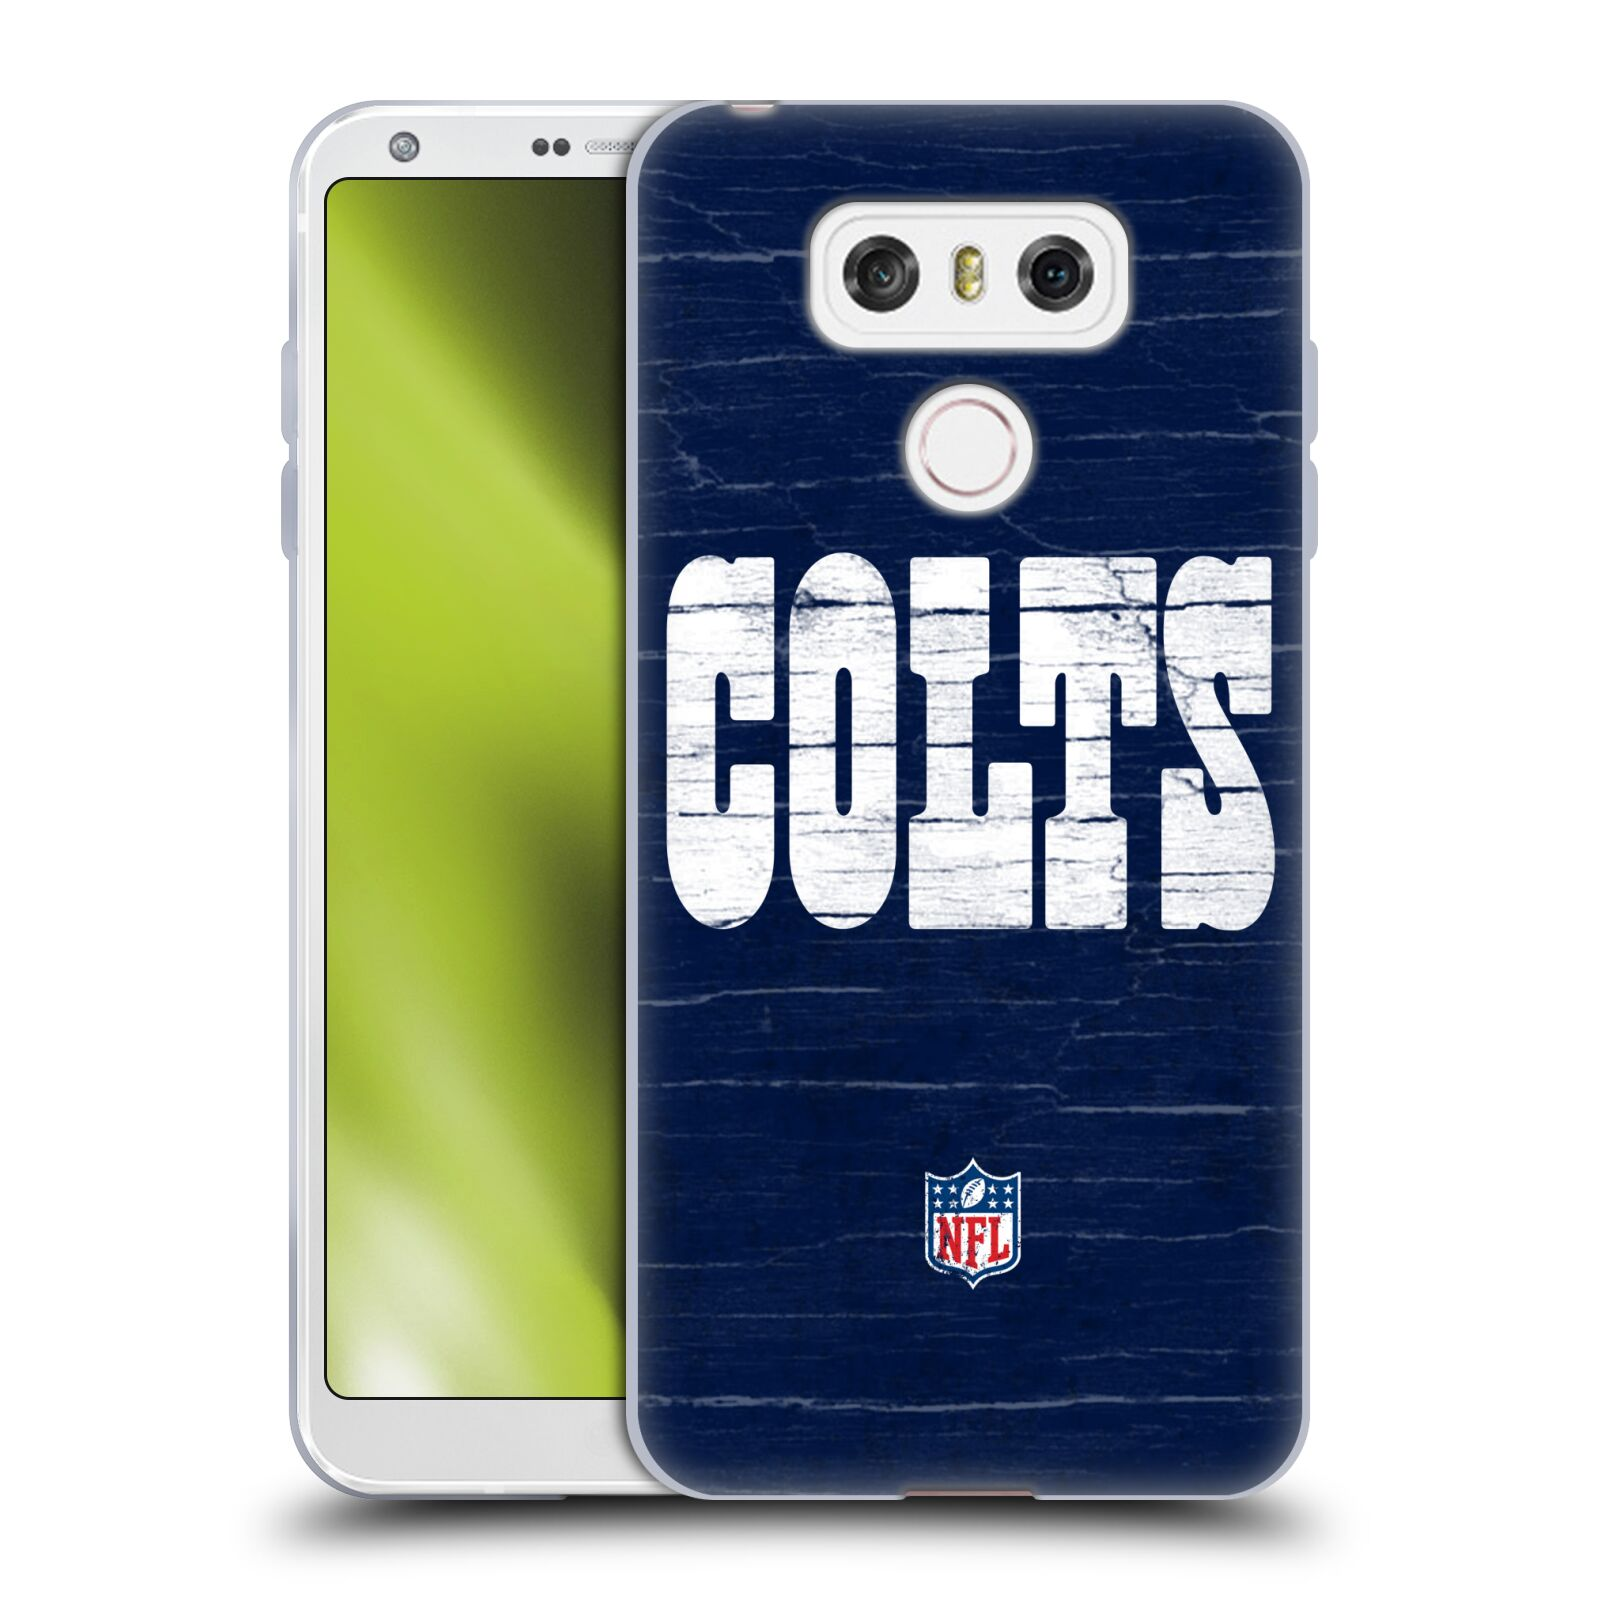 OFFIZIELLE-NFL-INDIANAPOLIS-COLTS-LOGO-SOFT-GEL-HULLE-FUR-LG-HANDYS-1